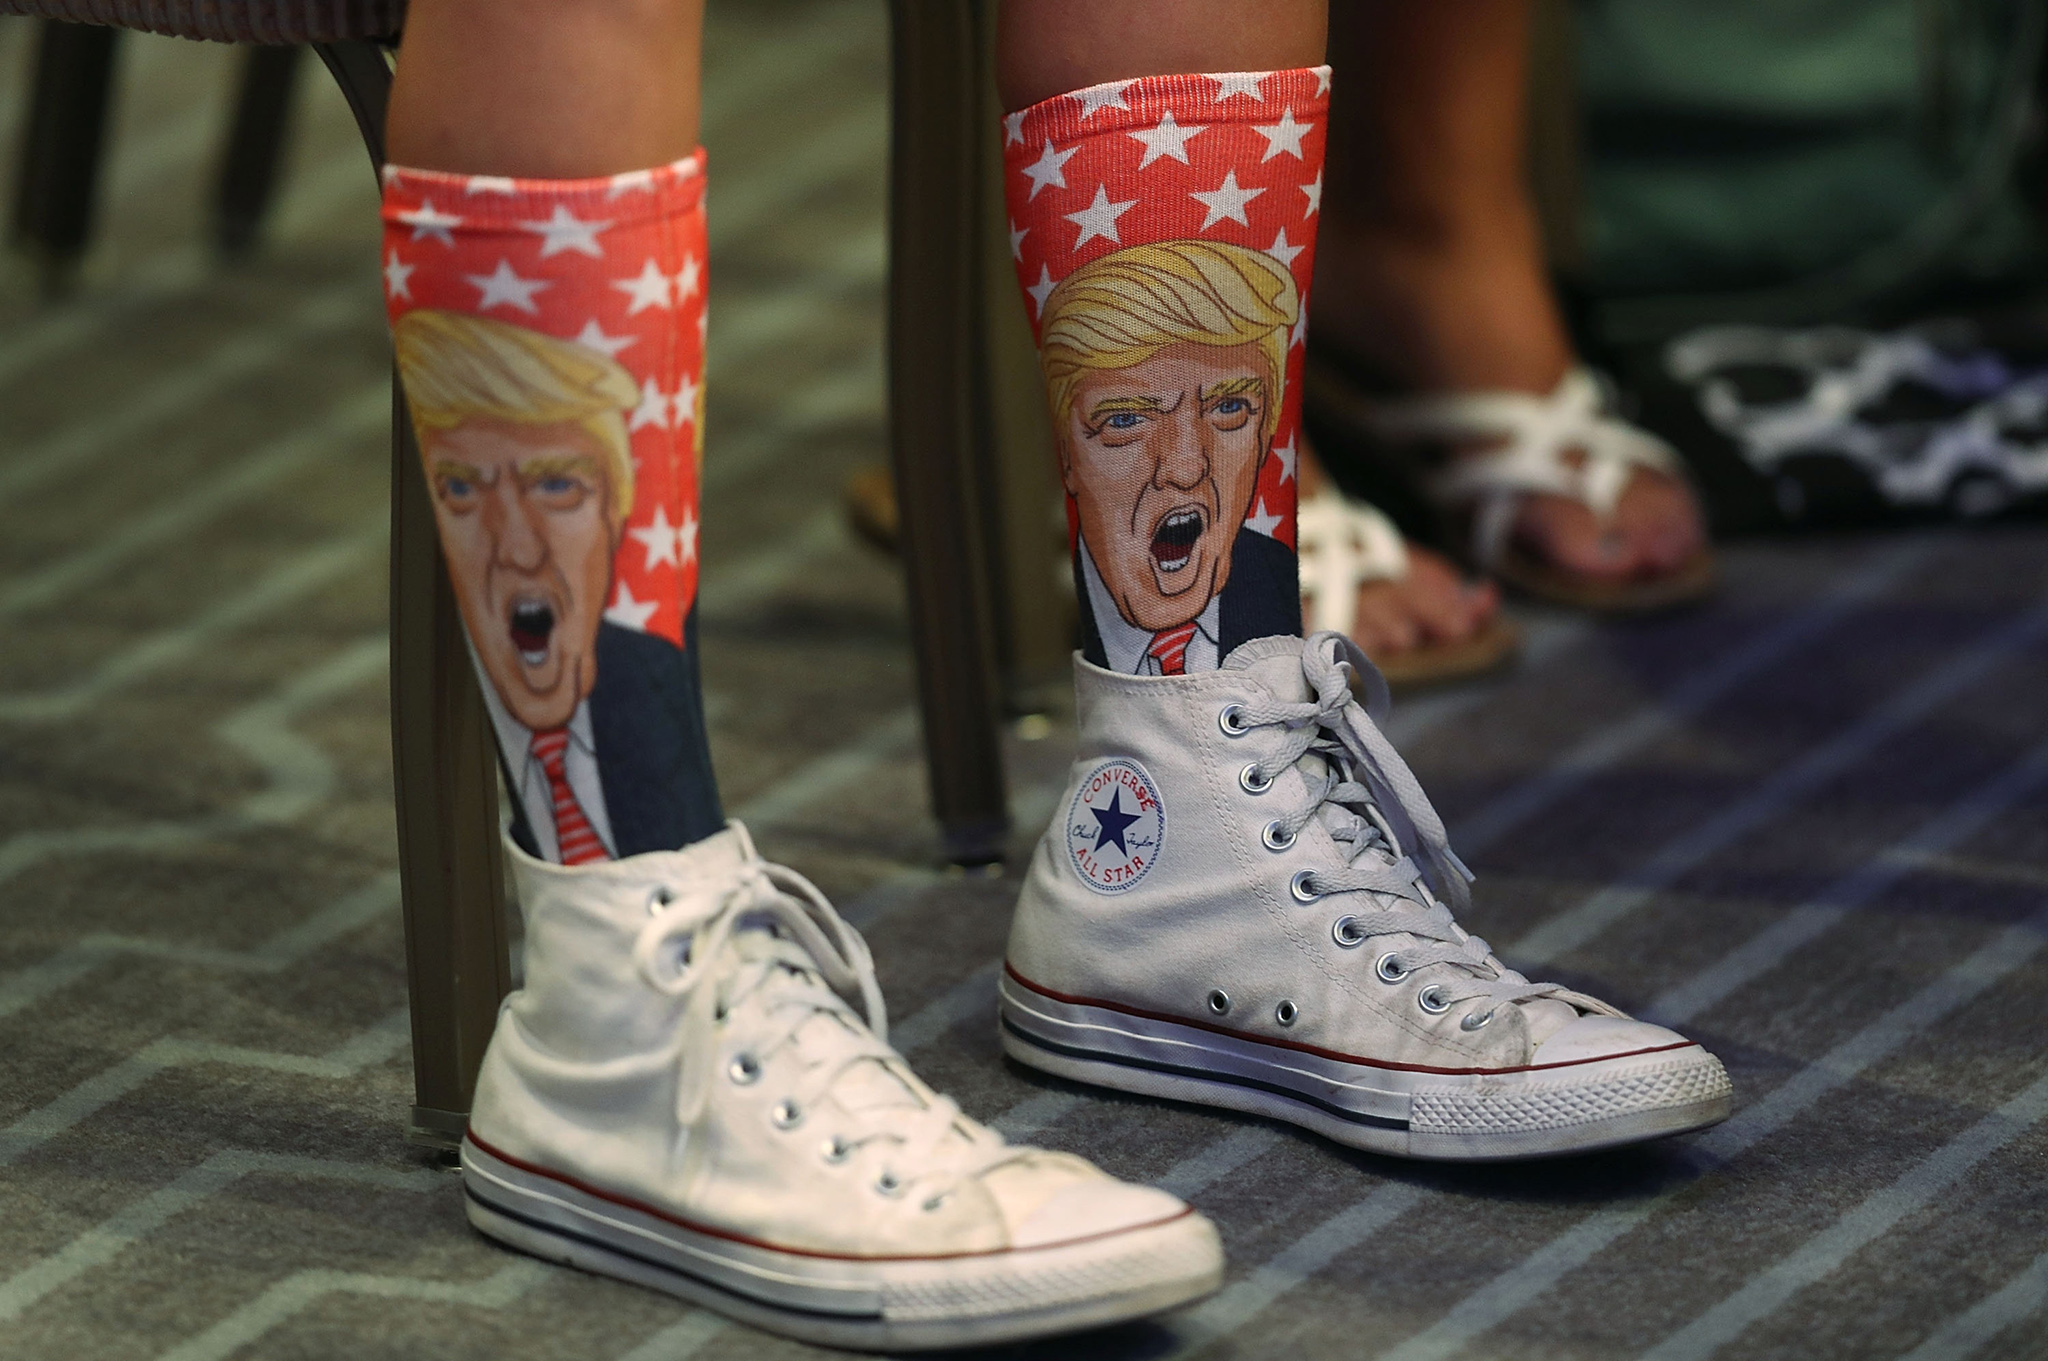 MIAMI BEACH, FL - AUGUST 11:  Republican presidential nominee Donald Trump socks are seen as he speaks during an address to the National Association of Home Builders at the Fontainebleau Miami Beach hotel on August 11, 2016 in Miami Beach, Florida. Trump continued to campaign for his run for president of the United States.  (Photo by Joe Raedle/Getty Images)